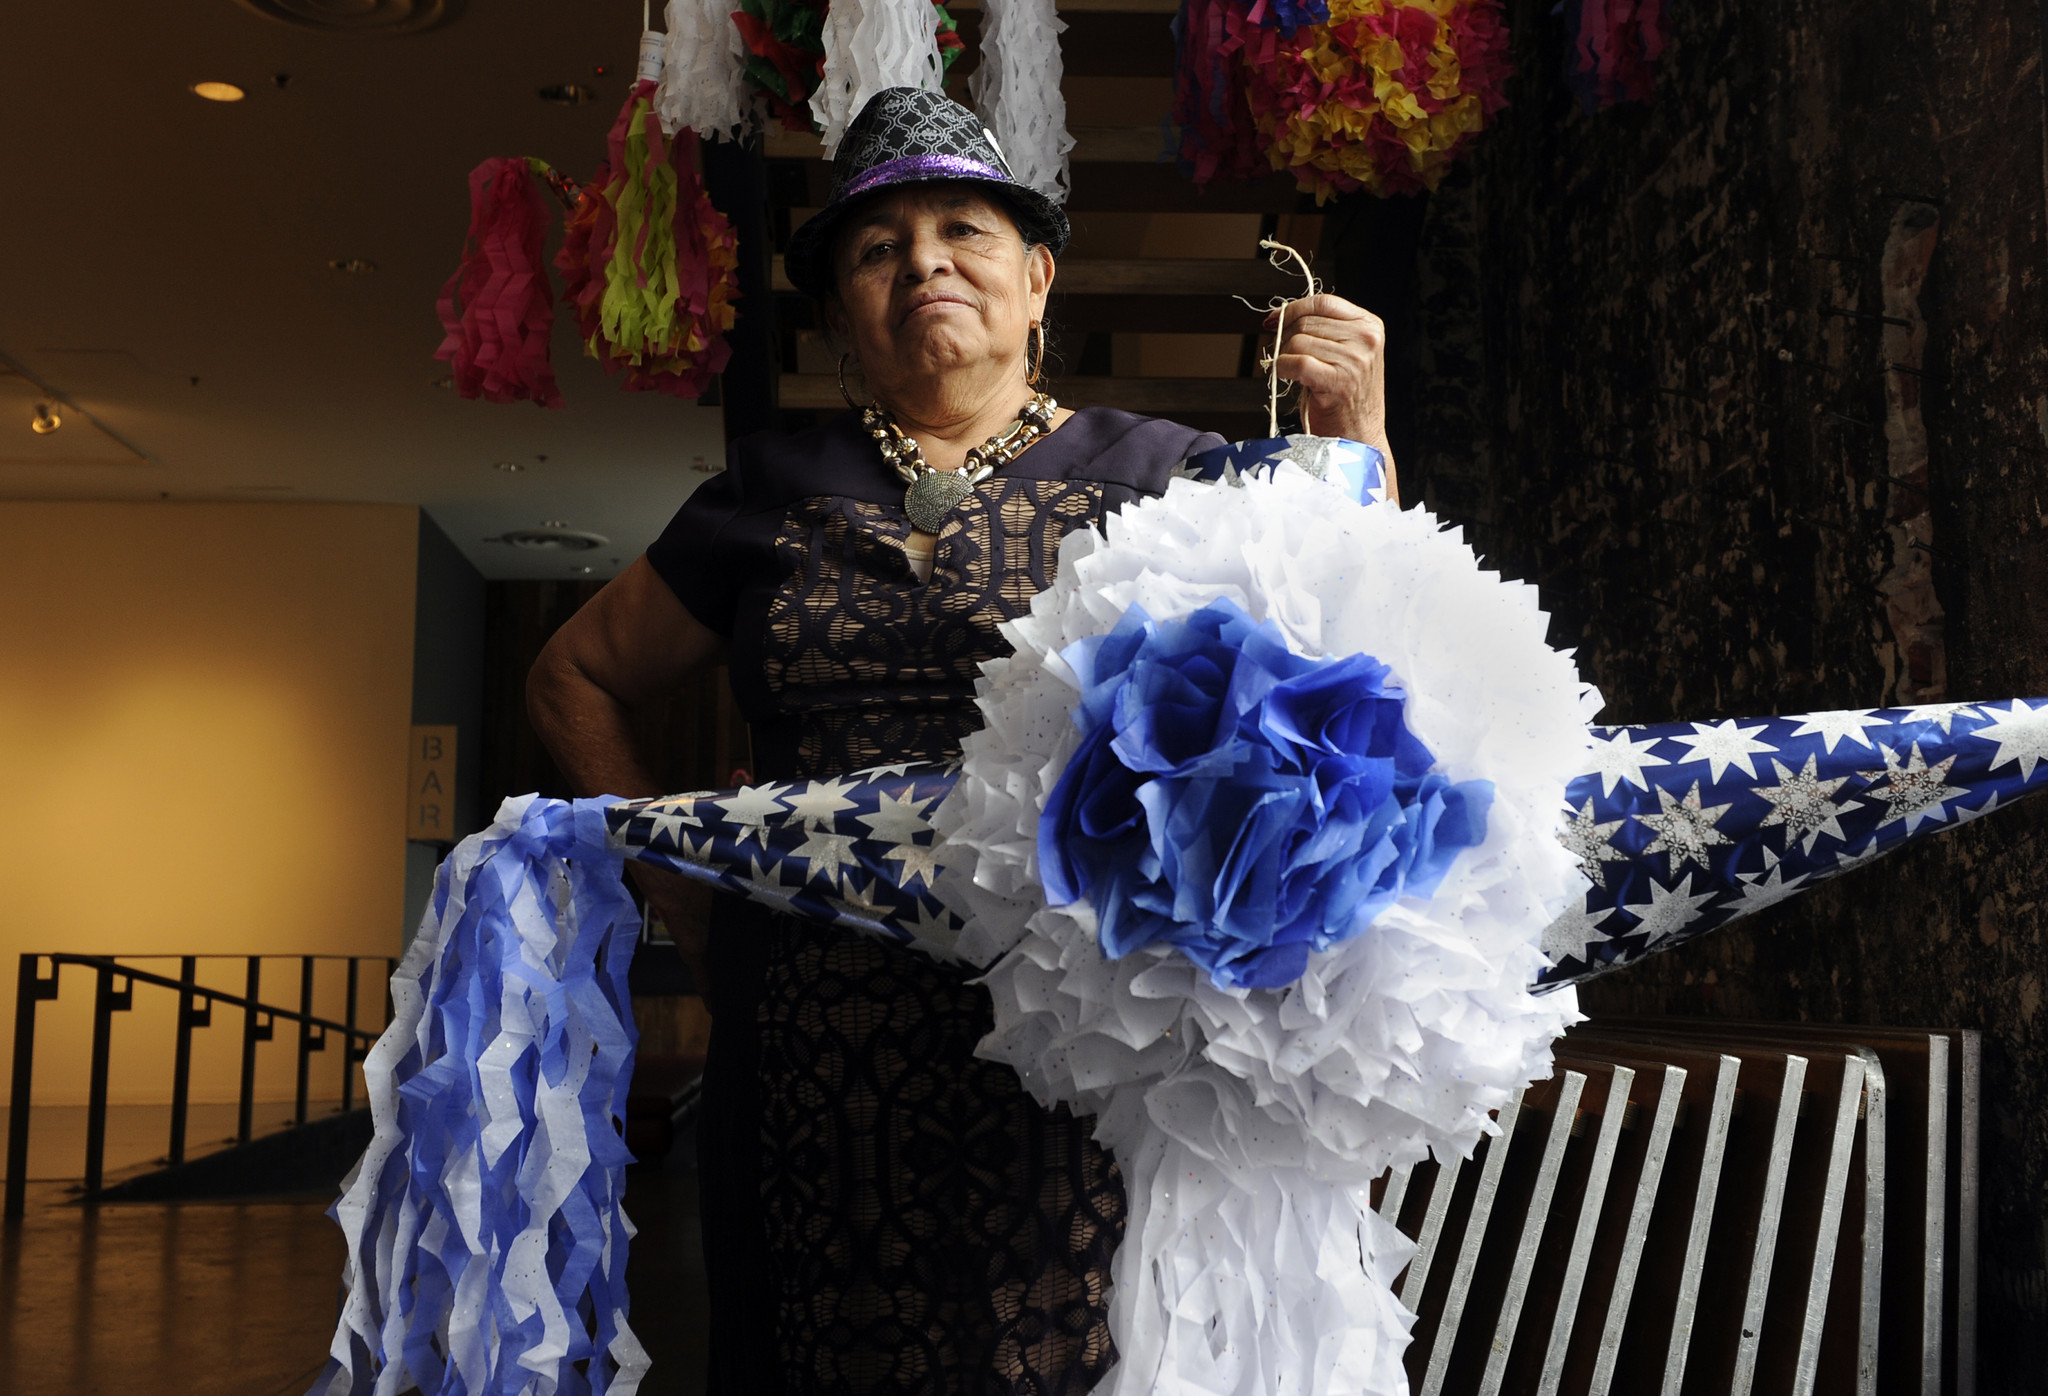 celebrating a mexican christmas tradition in southeast baltimore